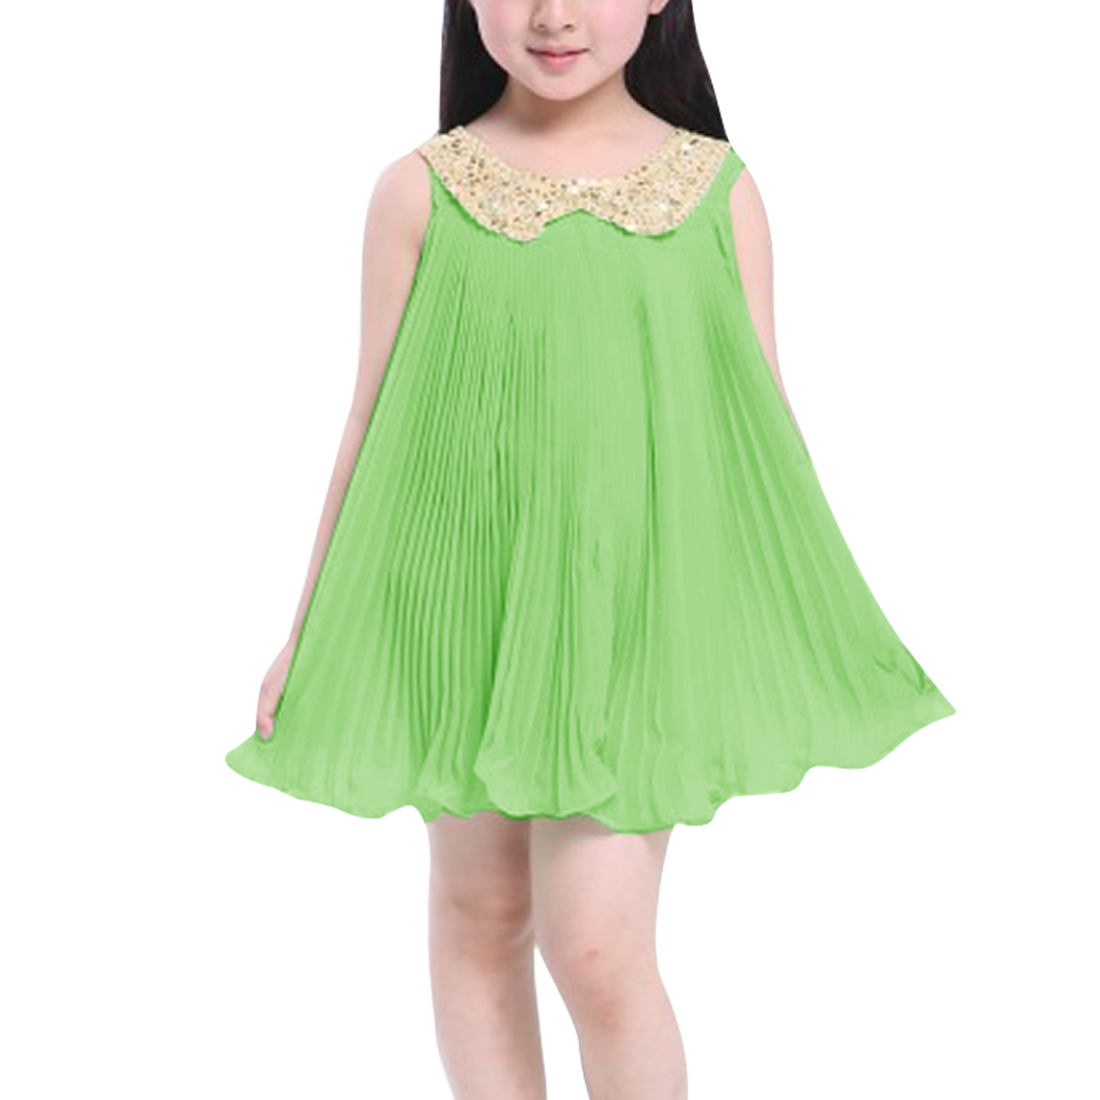 Fresh Light Green Color Sleeveless Pleated Babydoll Dress for Girl 7